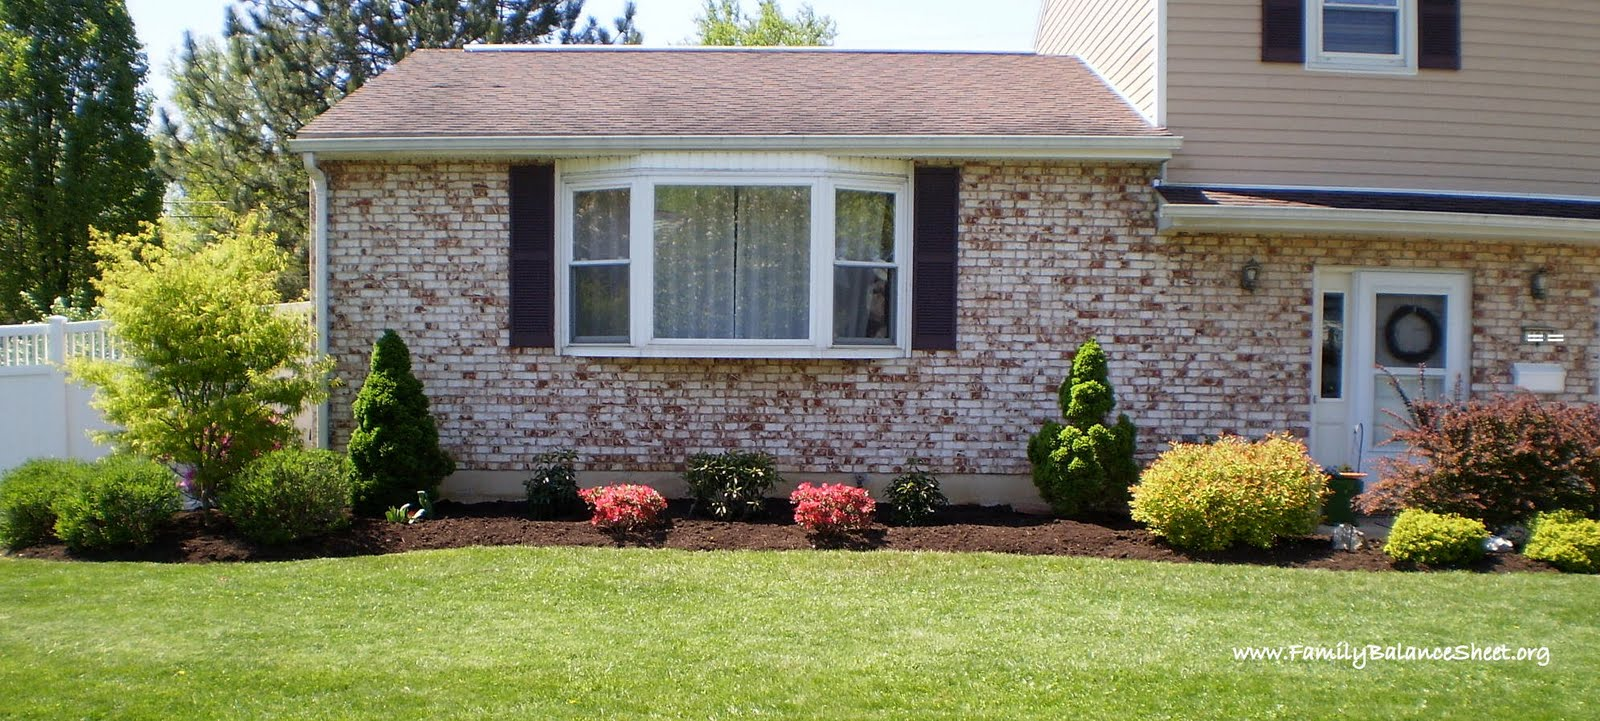 15 tips to help you design your front yard save money too for Small front garden designs